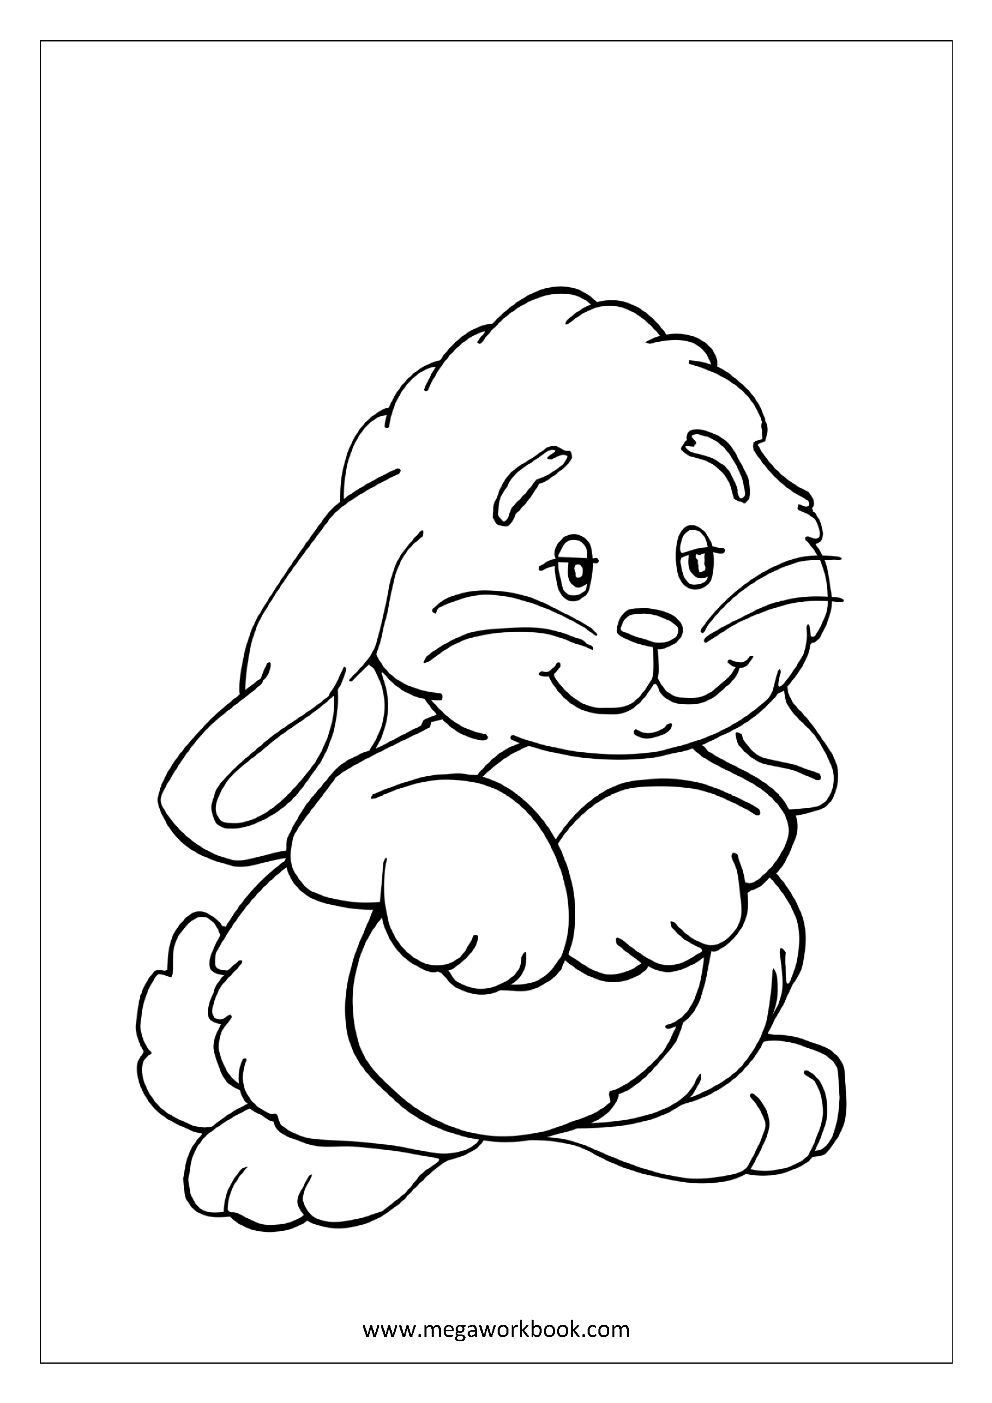 Animals Coloring Page For Kids Coloring Pages Kindergarten